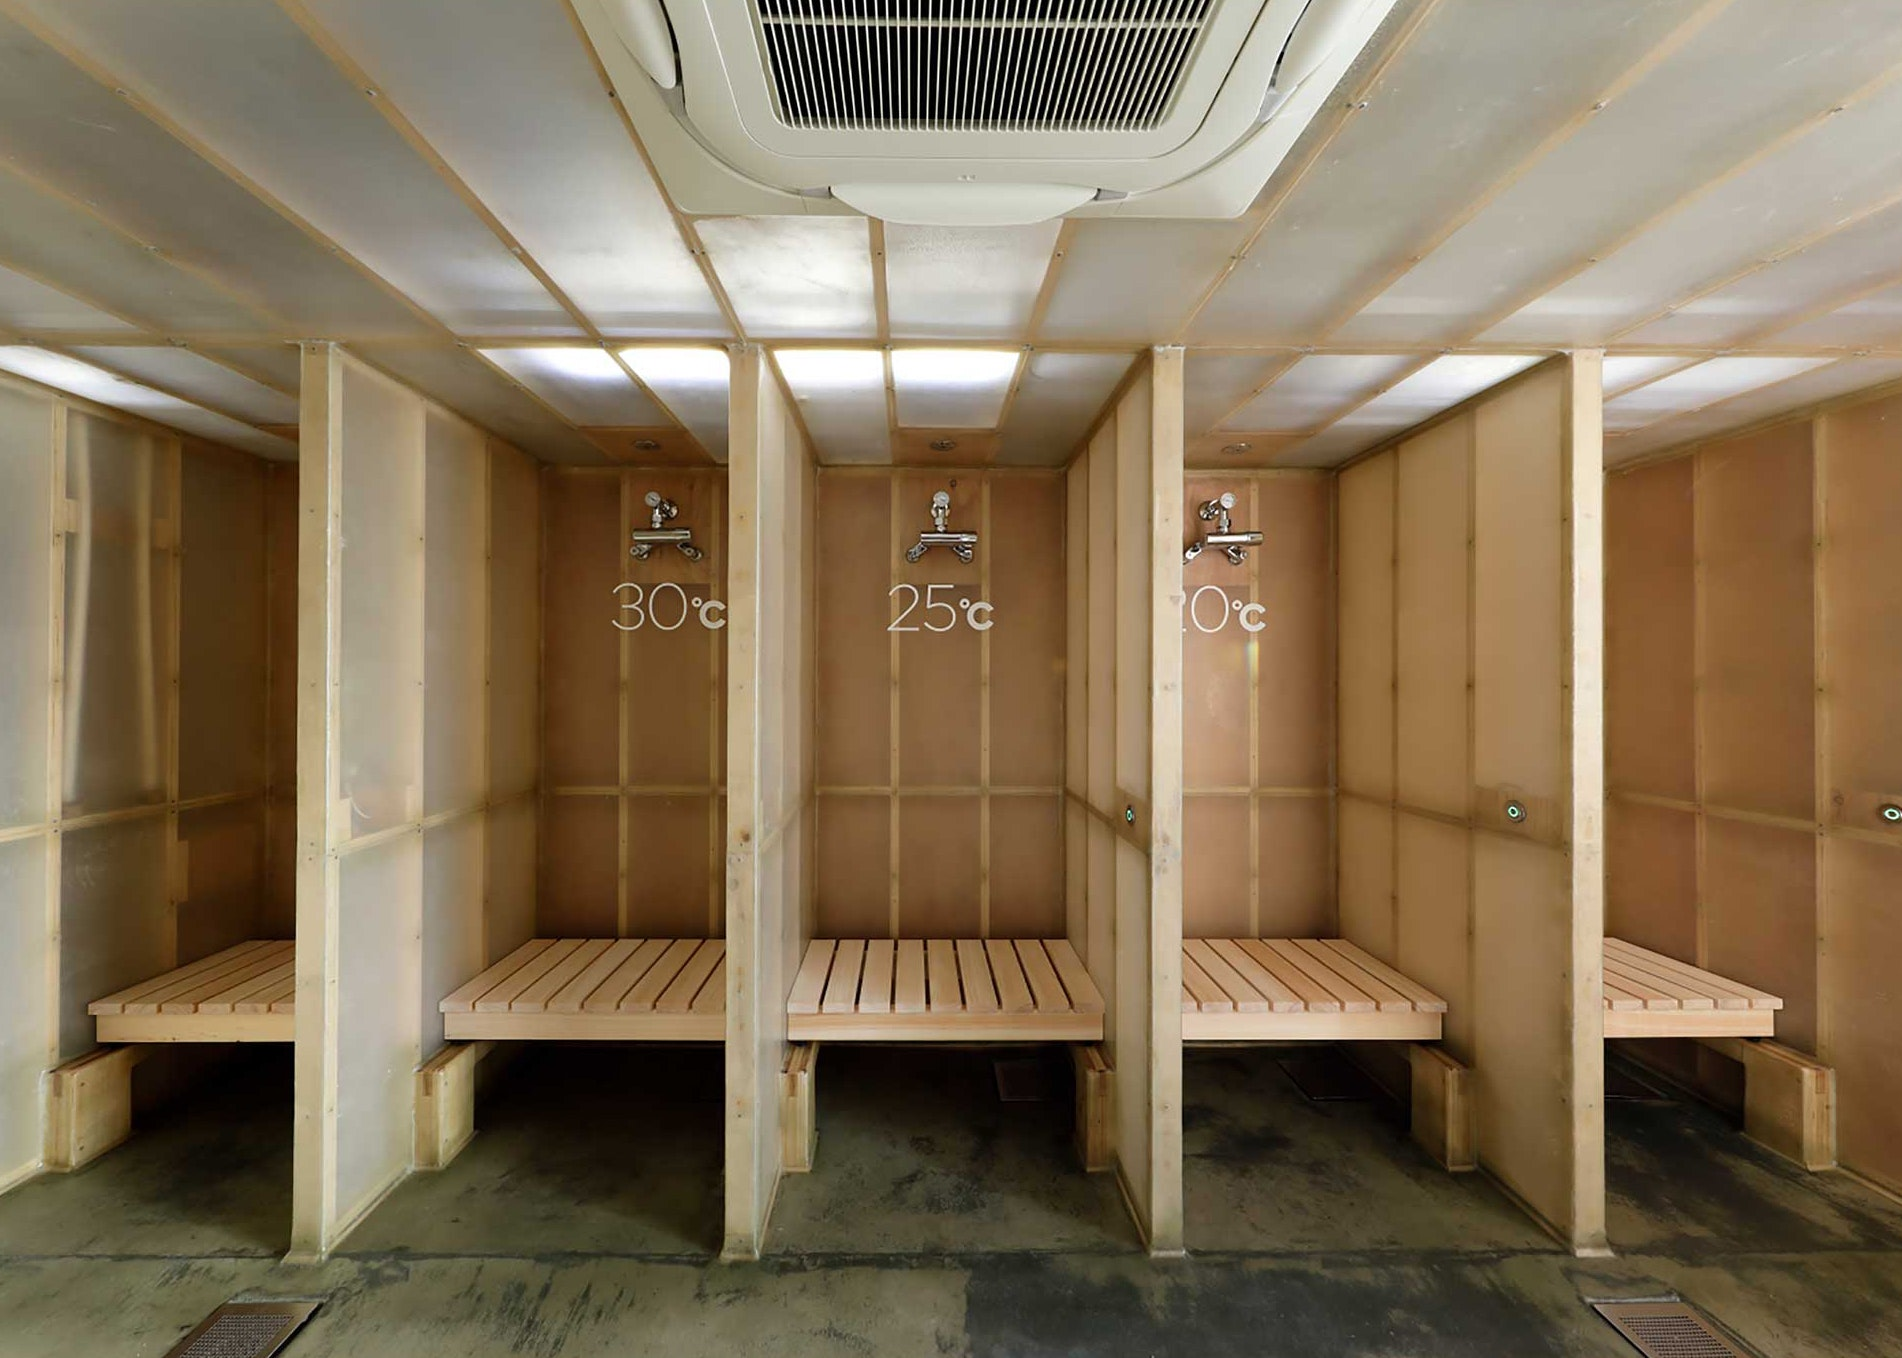 Shampoo, conditioner, and soap are provided in each shower unit.